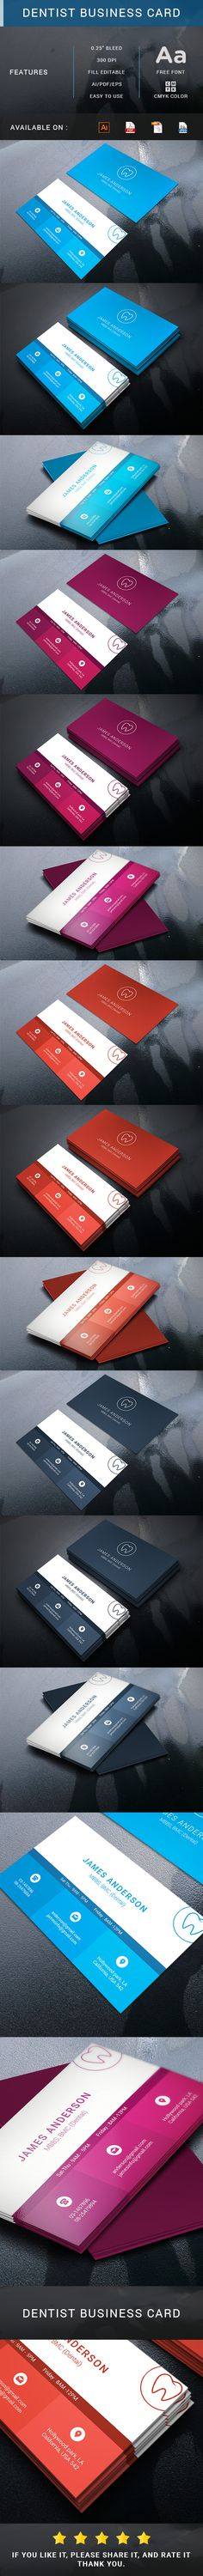 """Check out my @Behance project: """"Dentist business card"""" https://www.behance.net/gallery/45165373/Dentist-business-card"""